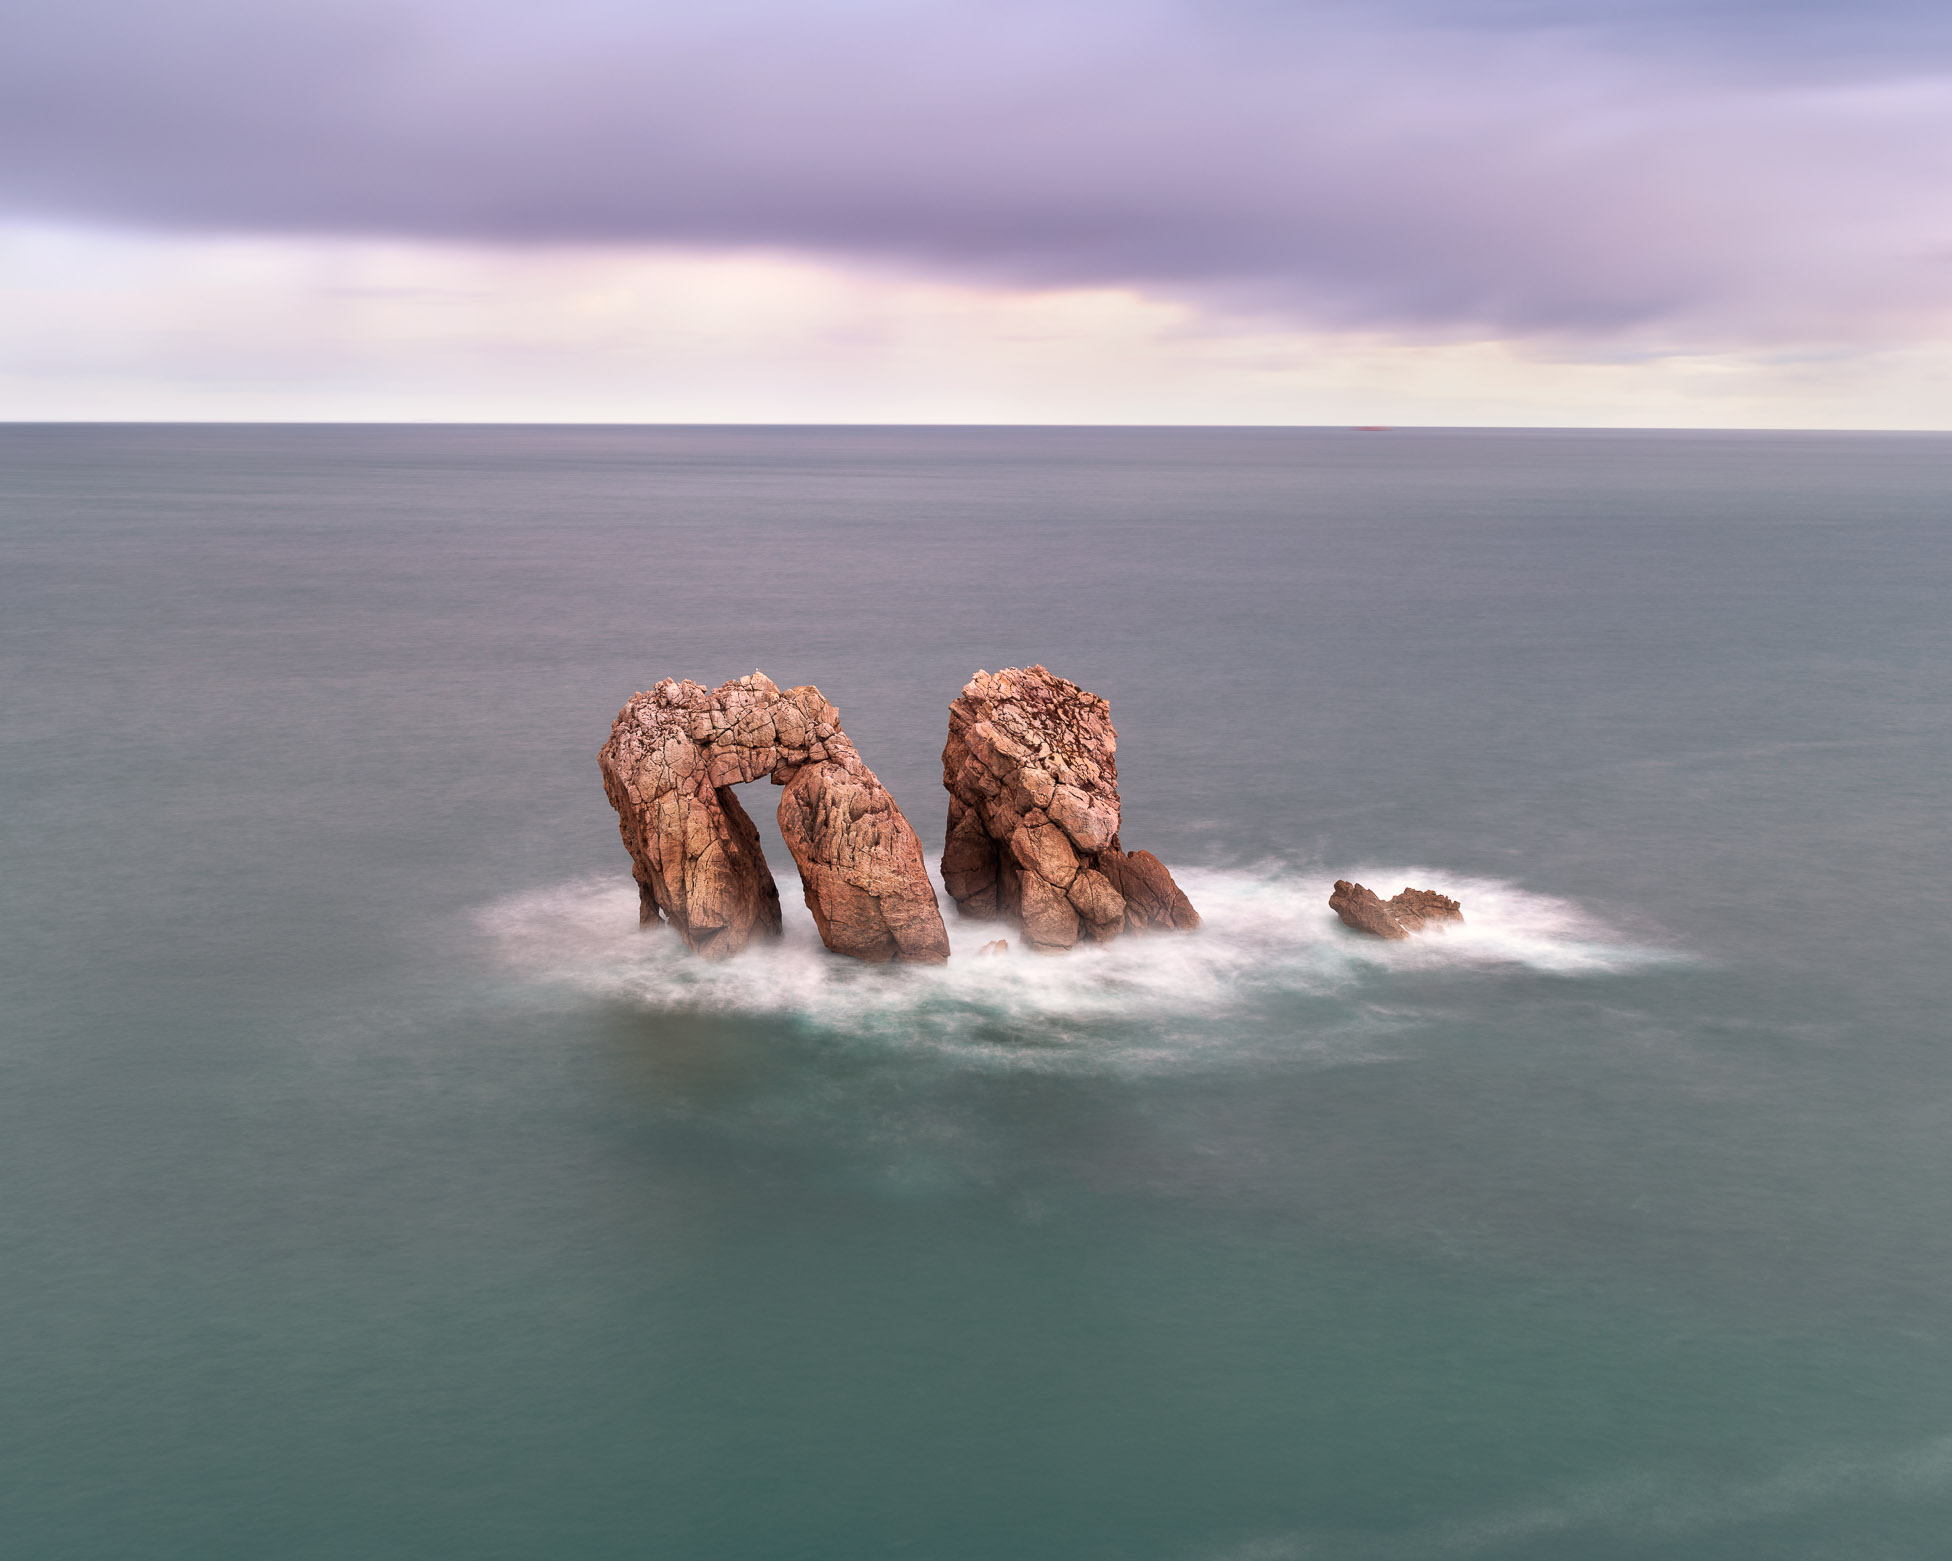 The Gate of Math, Urro del Manzano Rocks in the Morning, Liencres, Cantabria, Spain